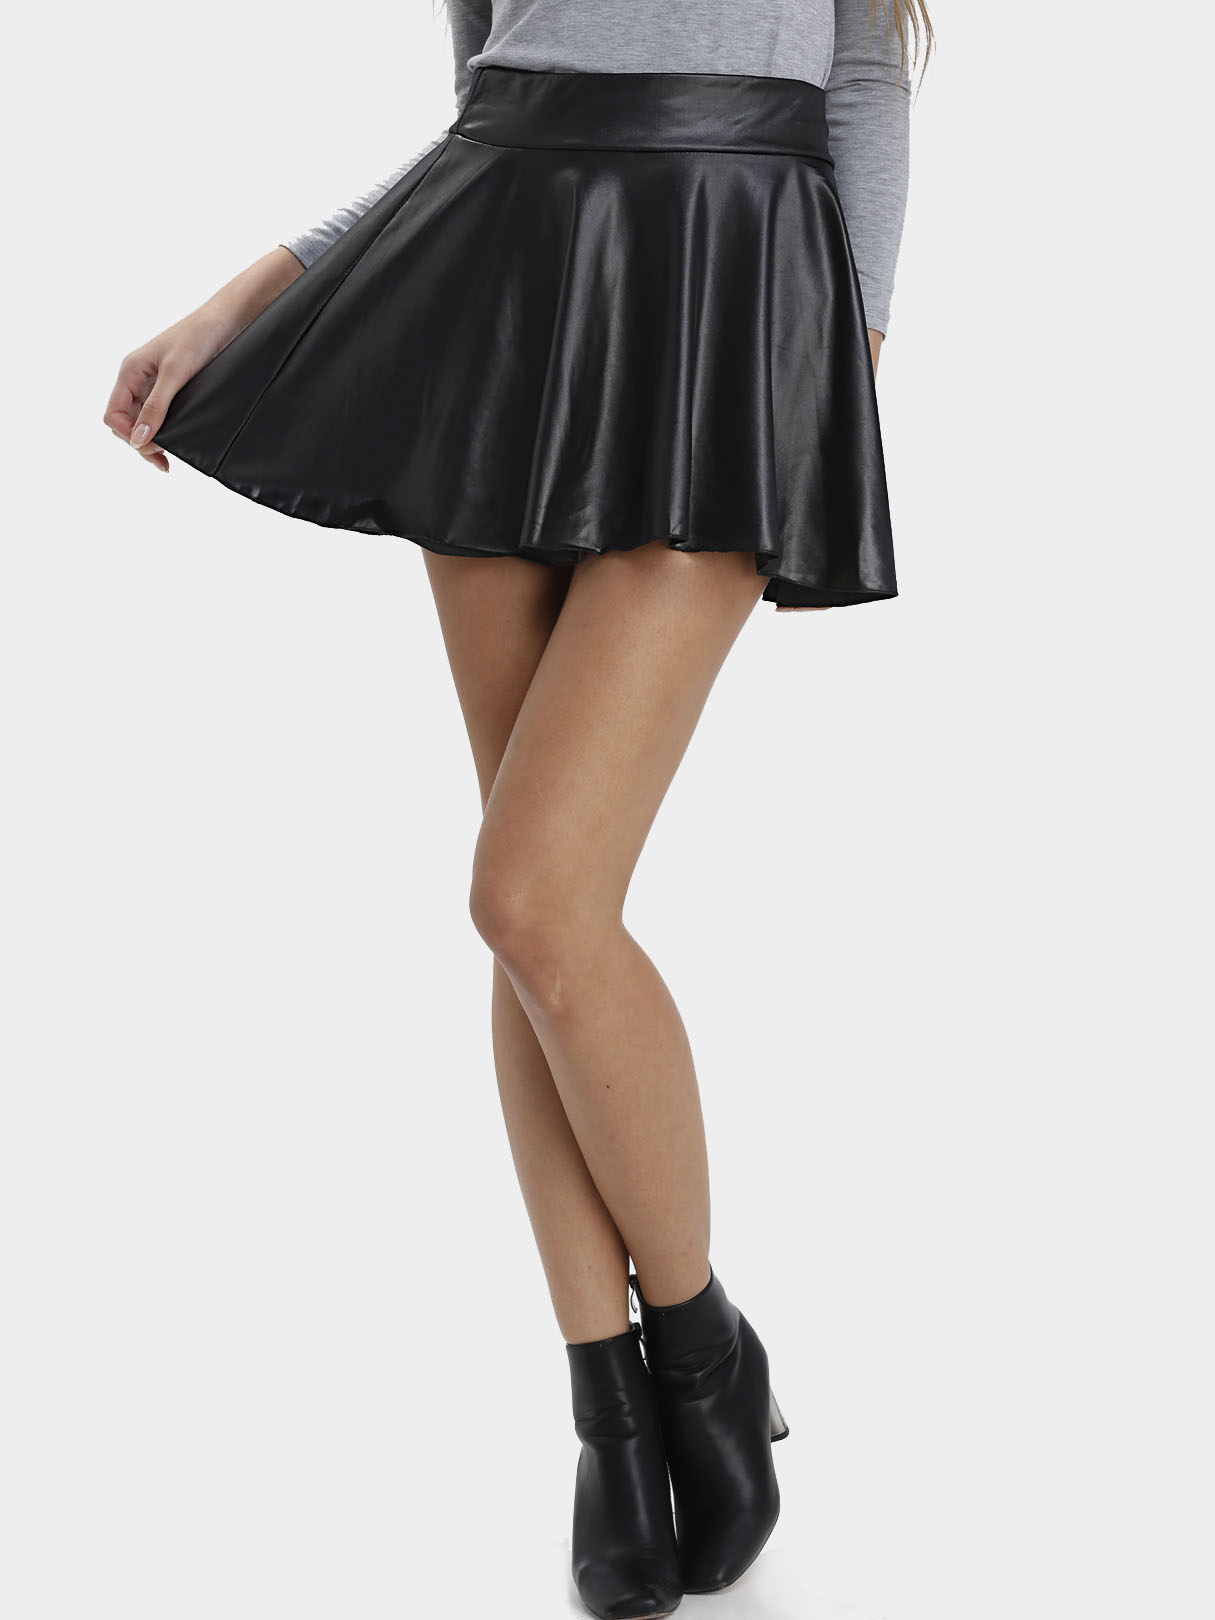 Black Leather Look Skater Skirt With Elastic Band pleated high waist a line skater skirt